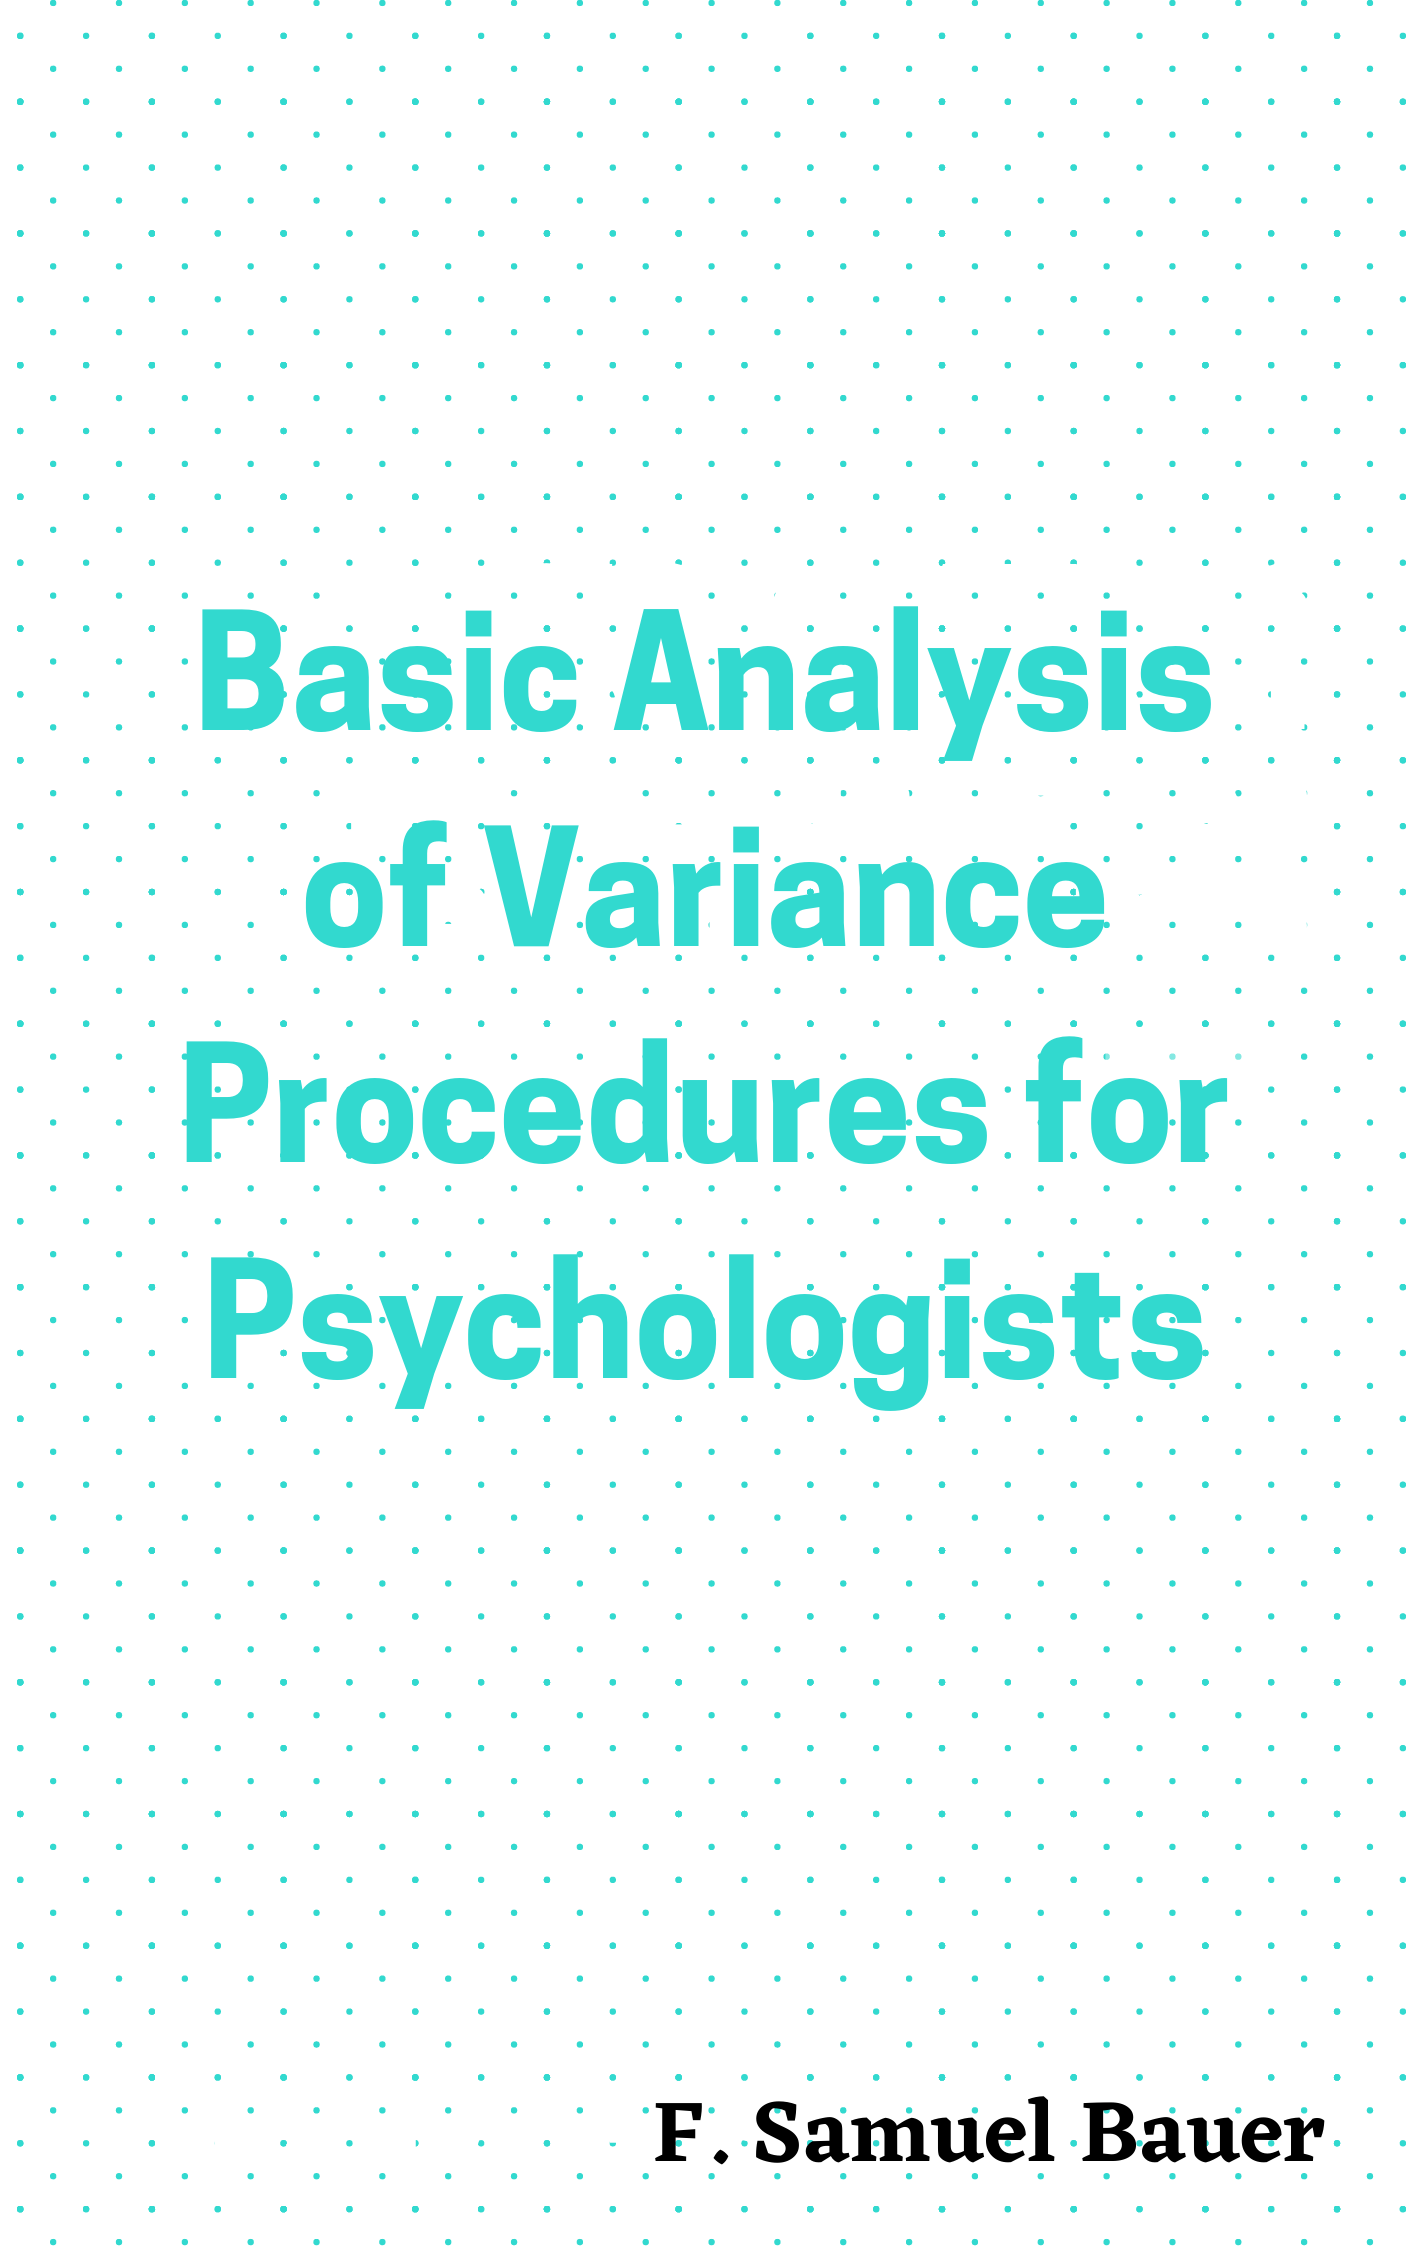 Basic Analysis of Variance Procedures for Psychologists